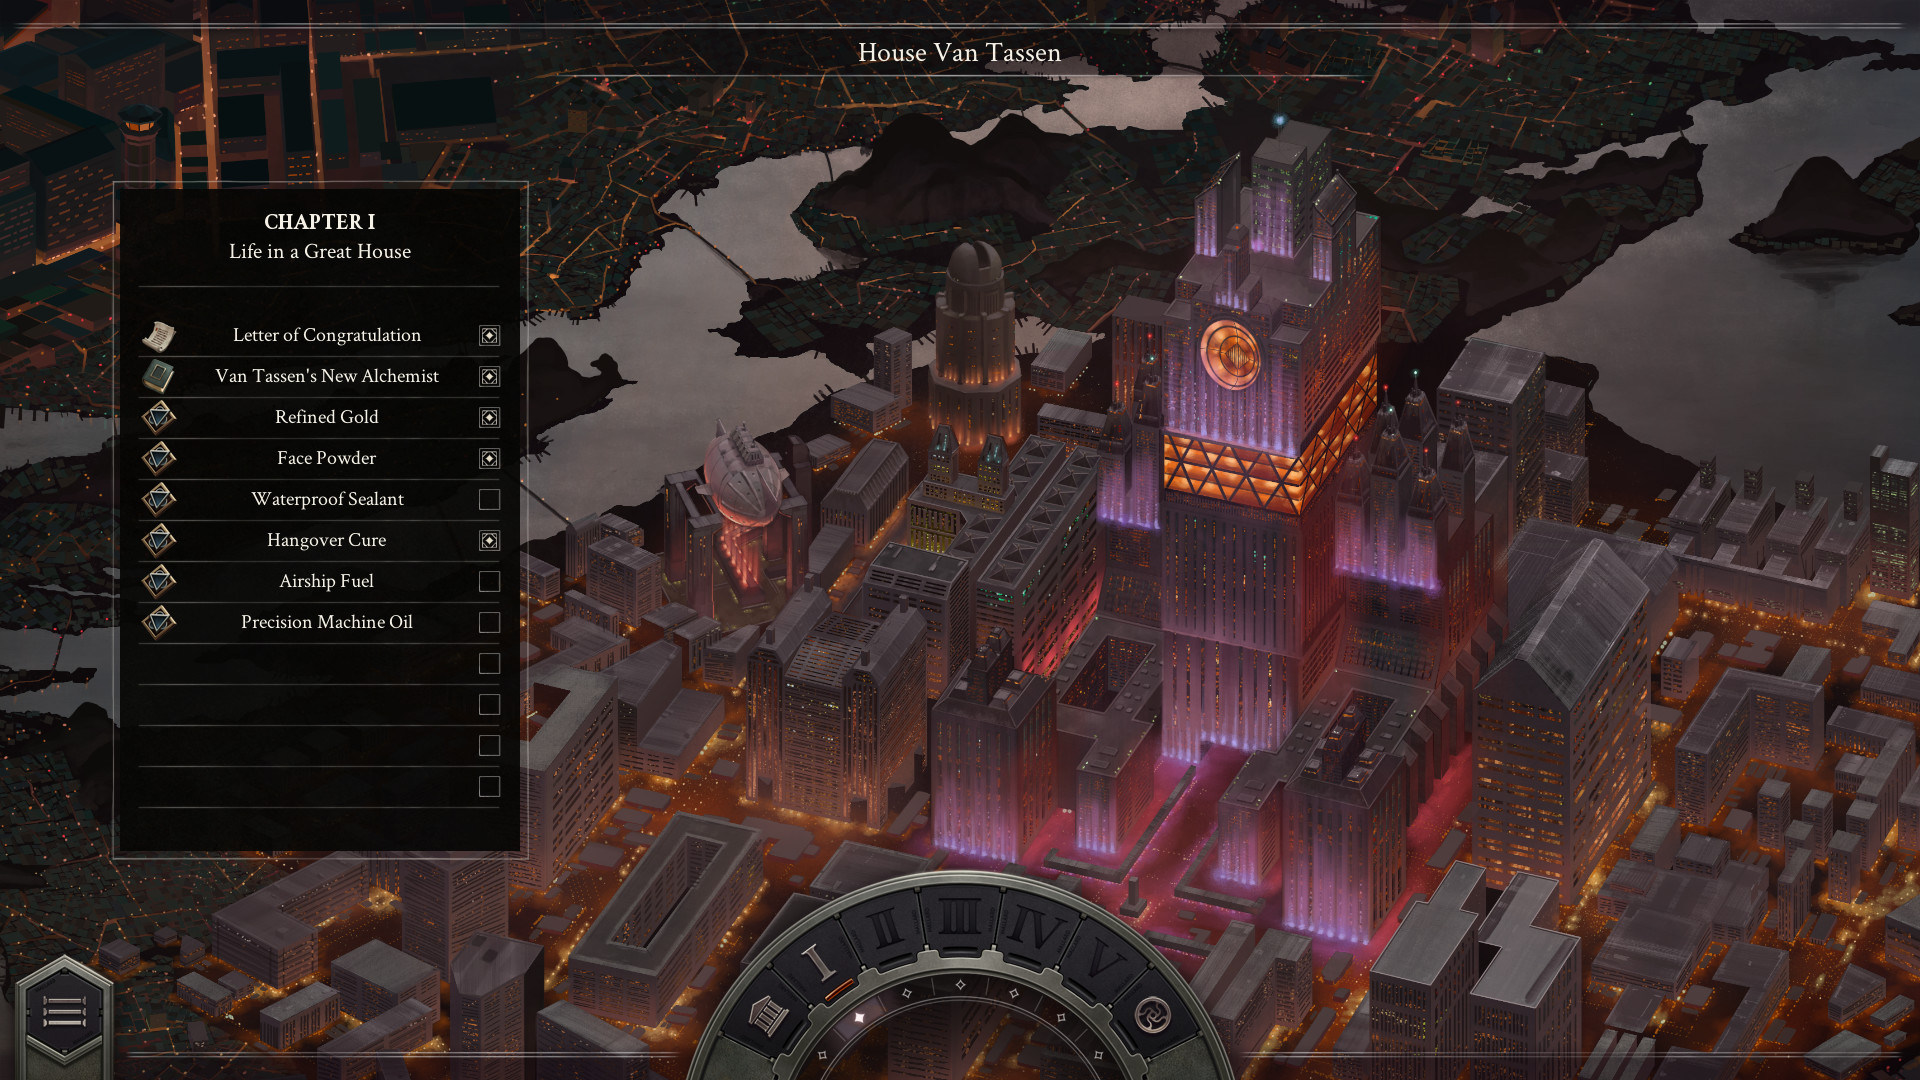 Opus Magnum For Pc Reviews Opencritic